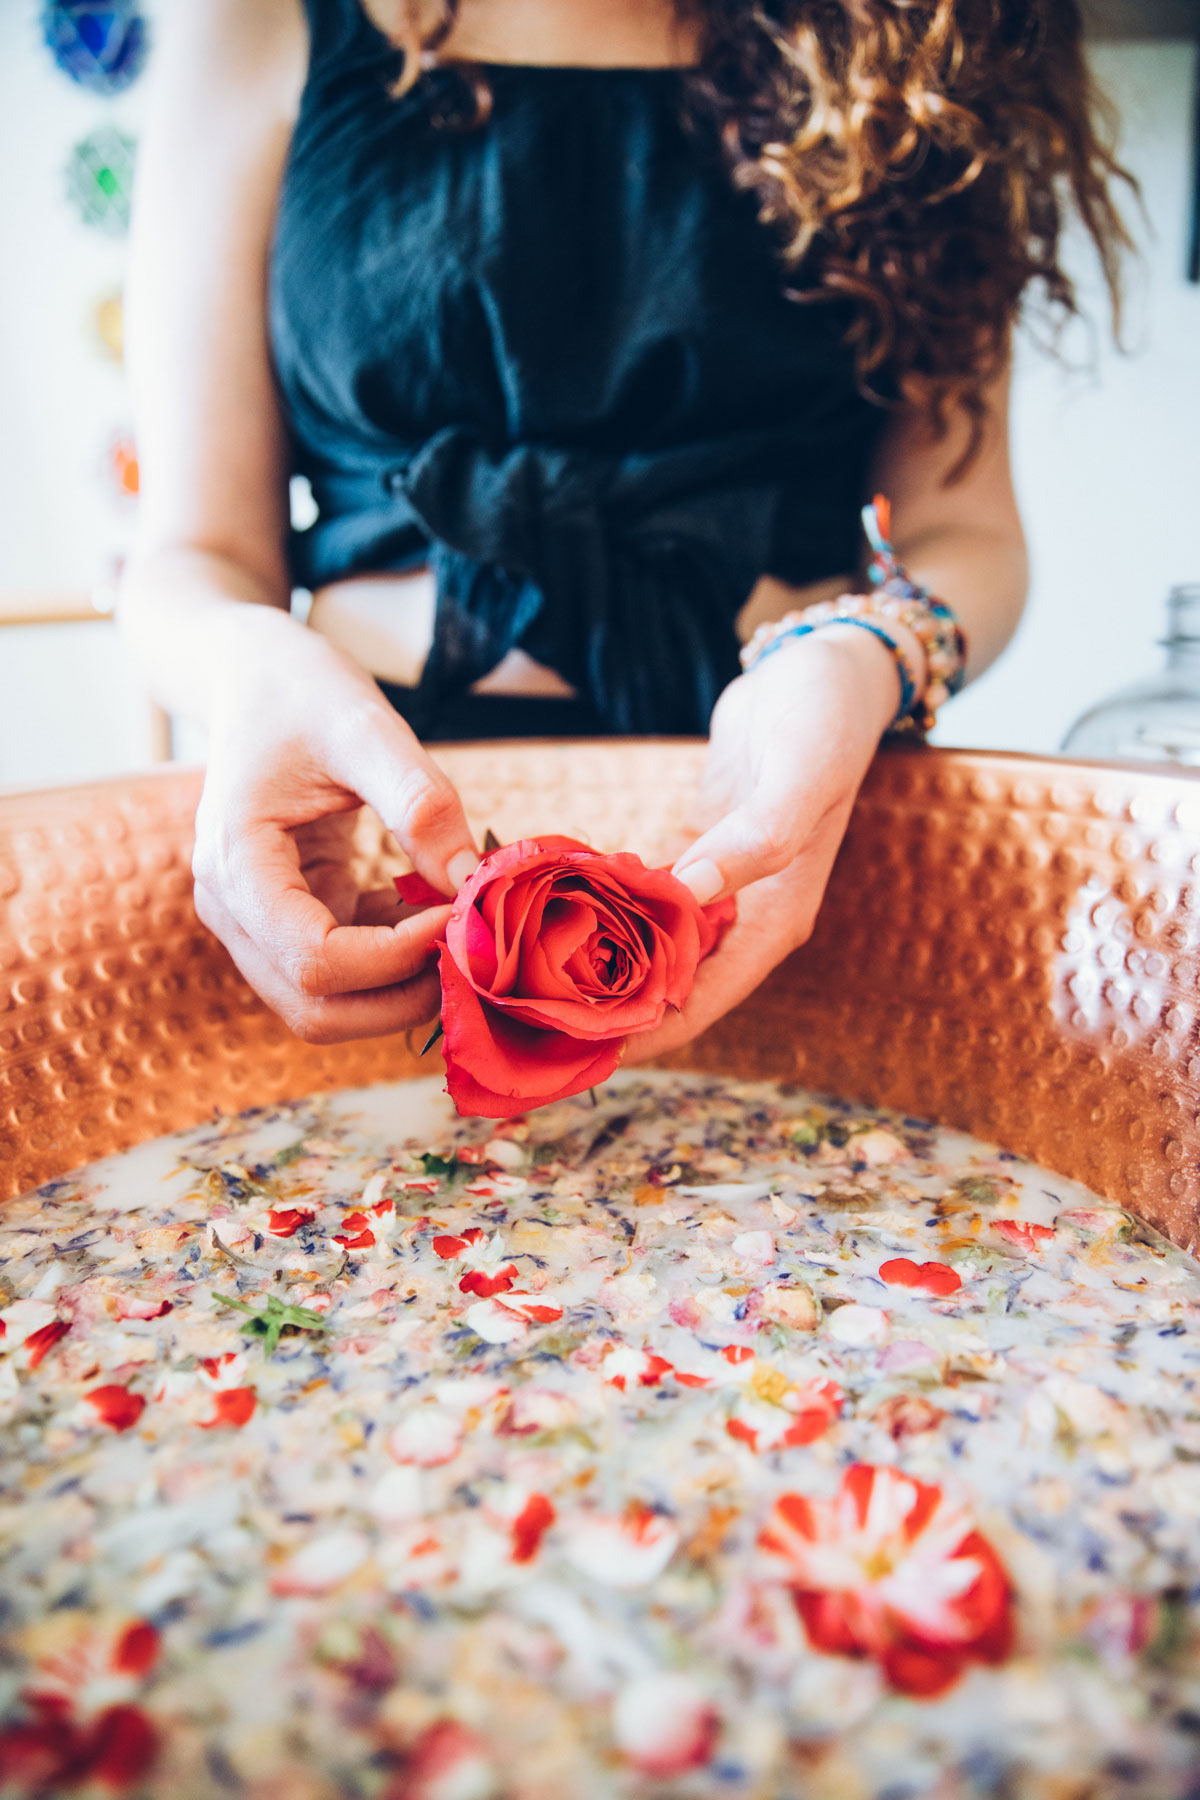 Woman holding a rose over a copper bowl filled with herbs and salts.